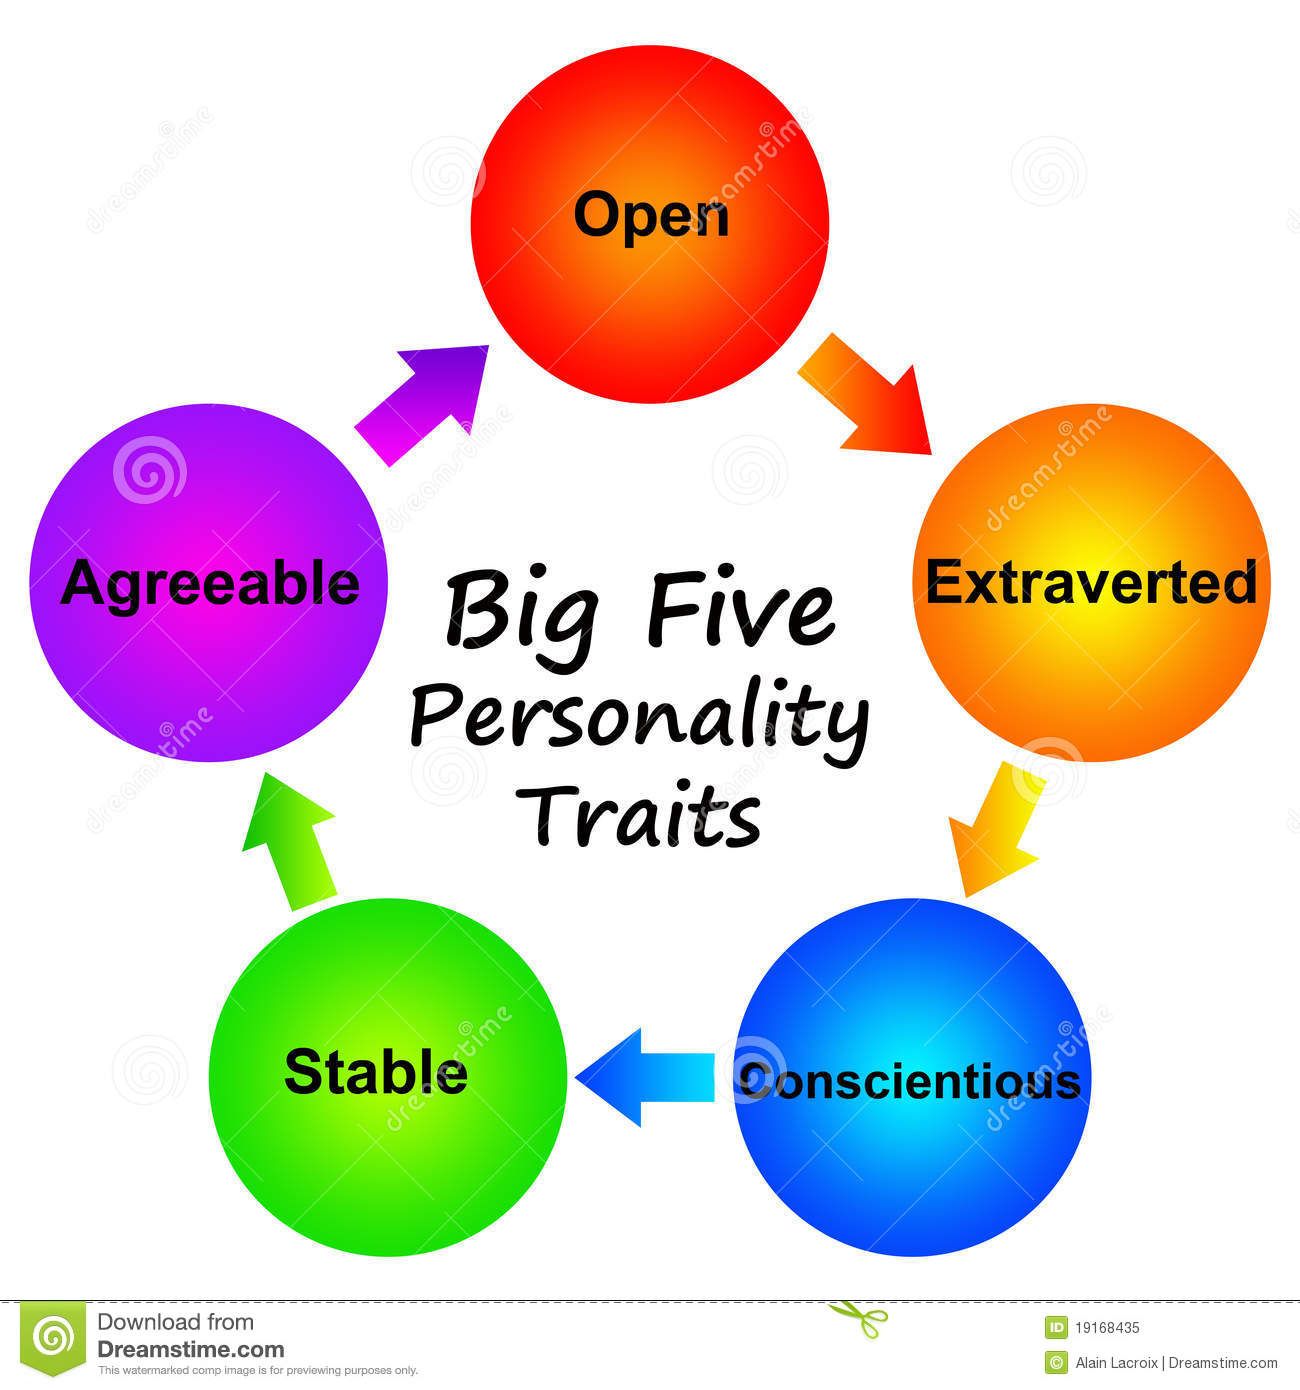 5 Personality Traits And How You Can Adopt One